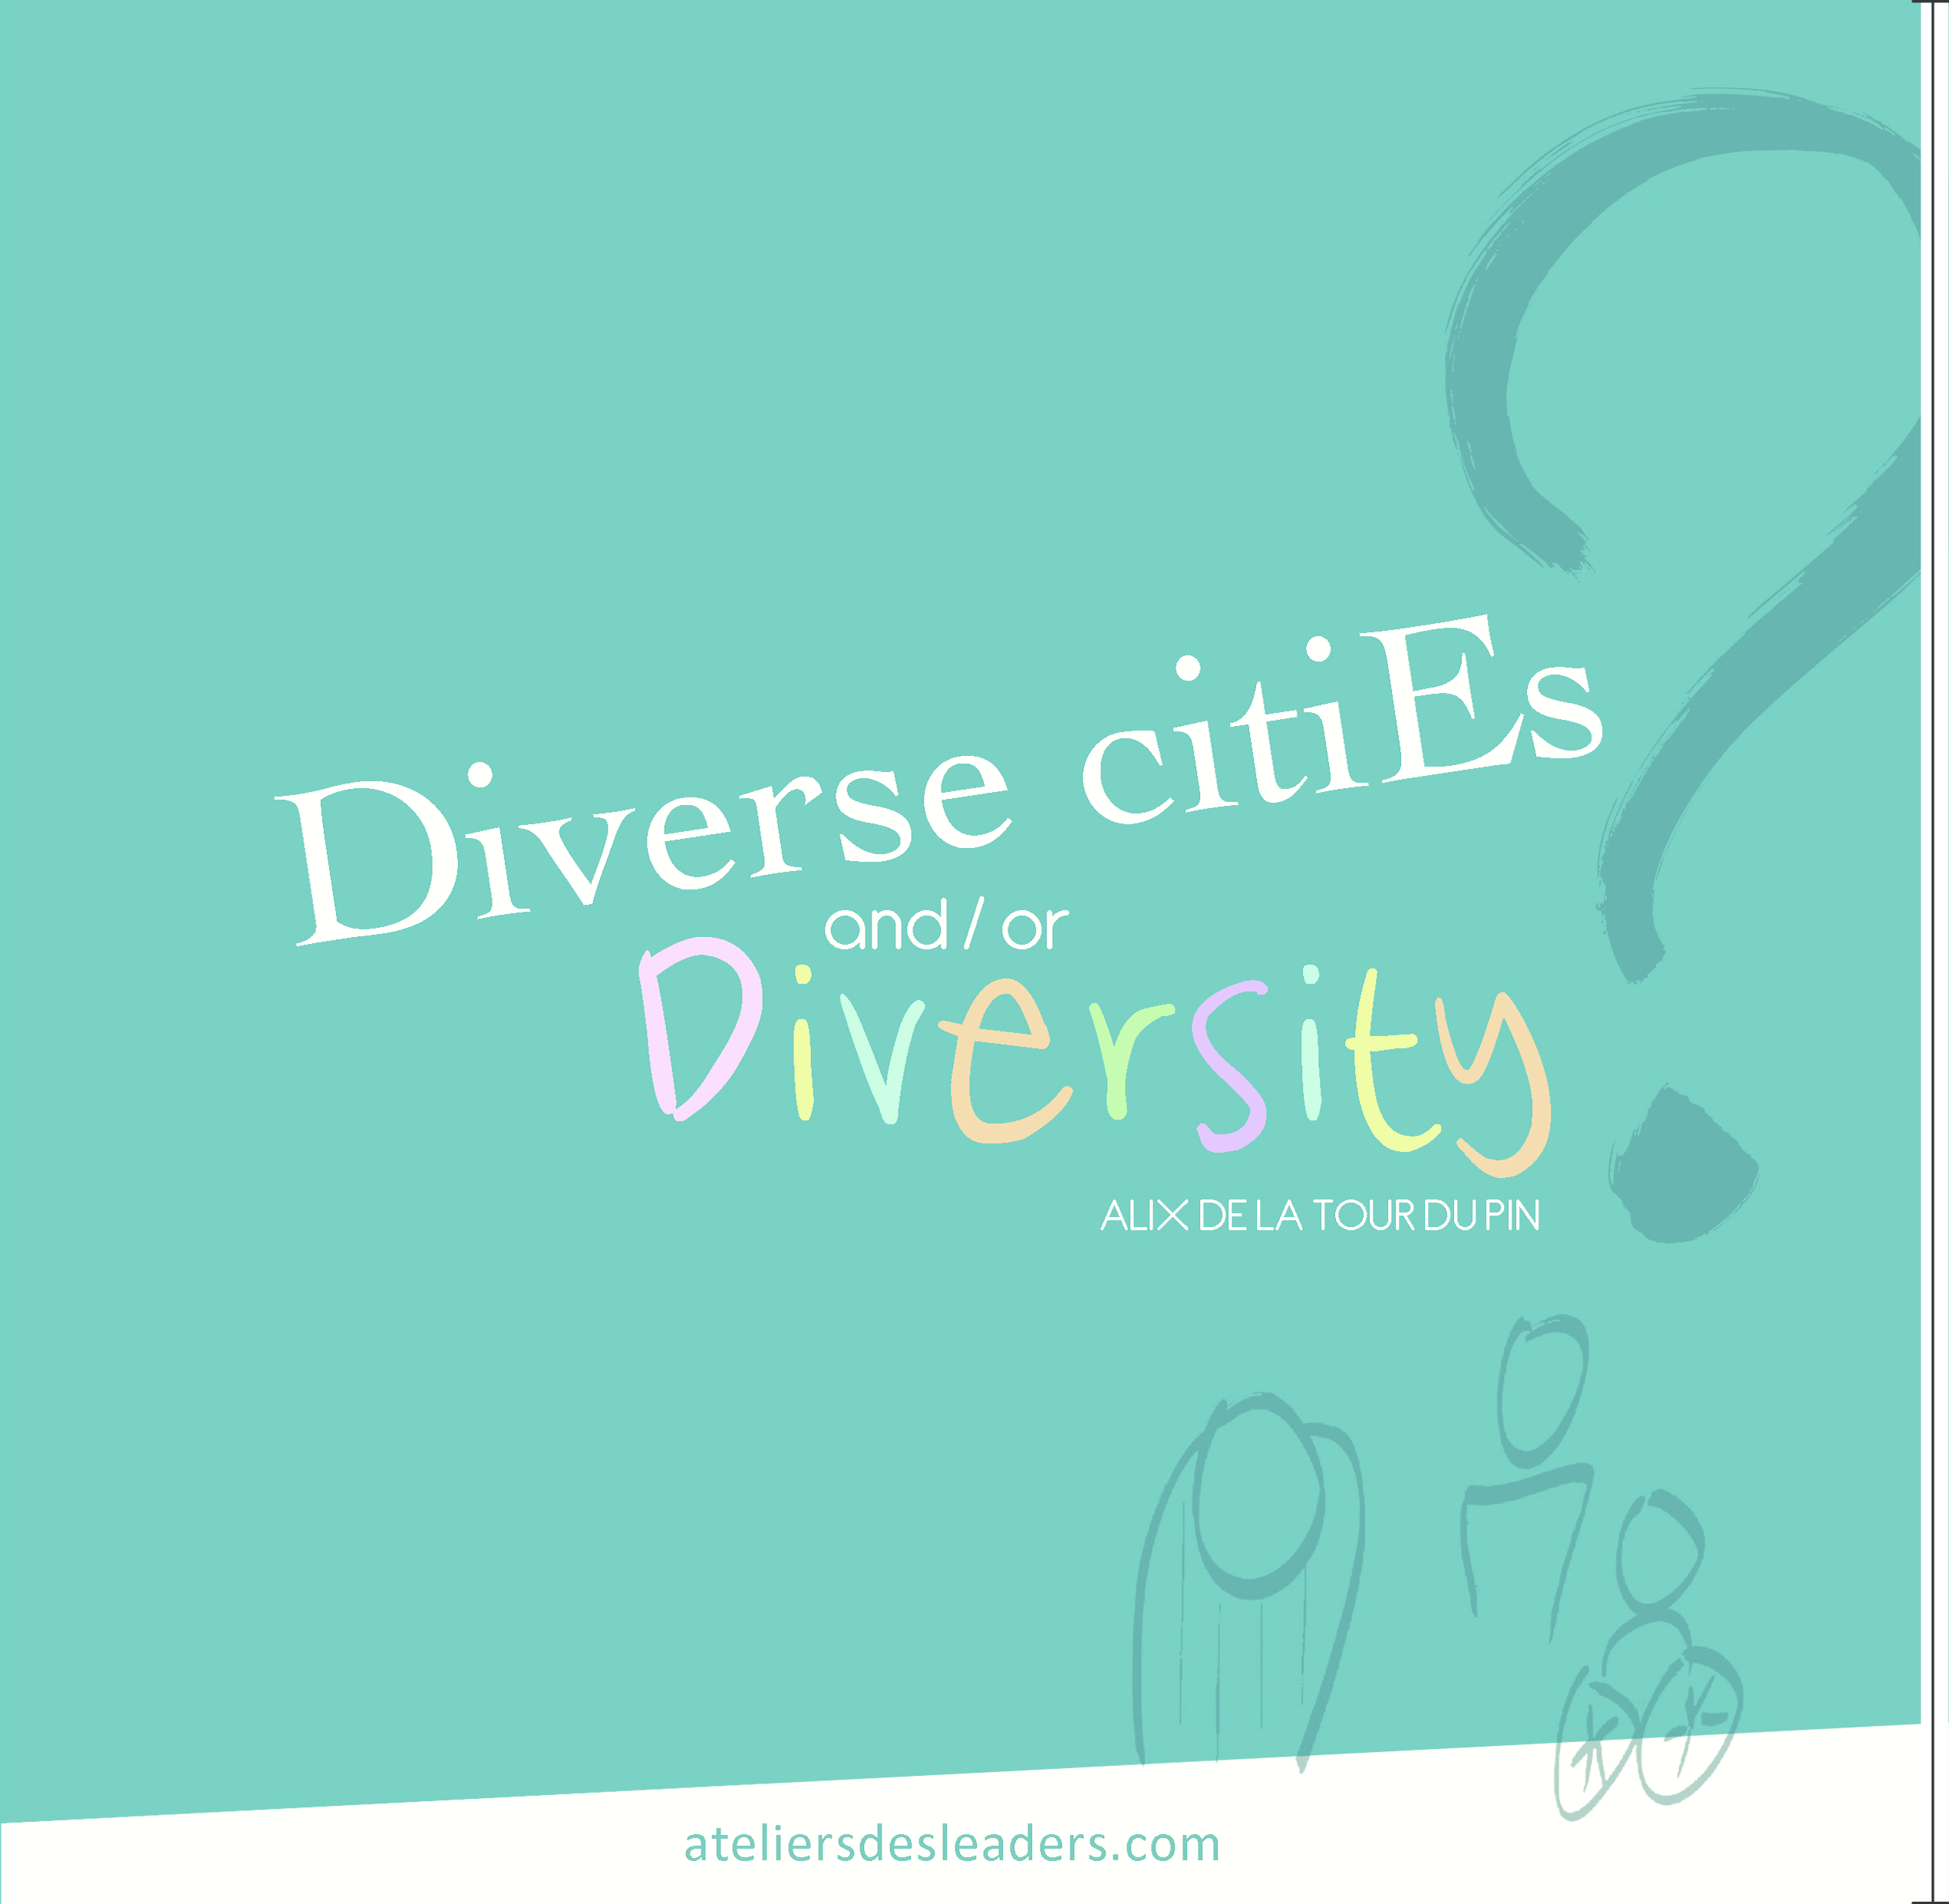 Diverse Cities or Diversity ?(english)